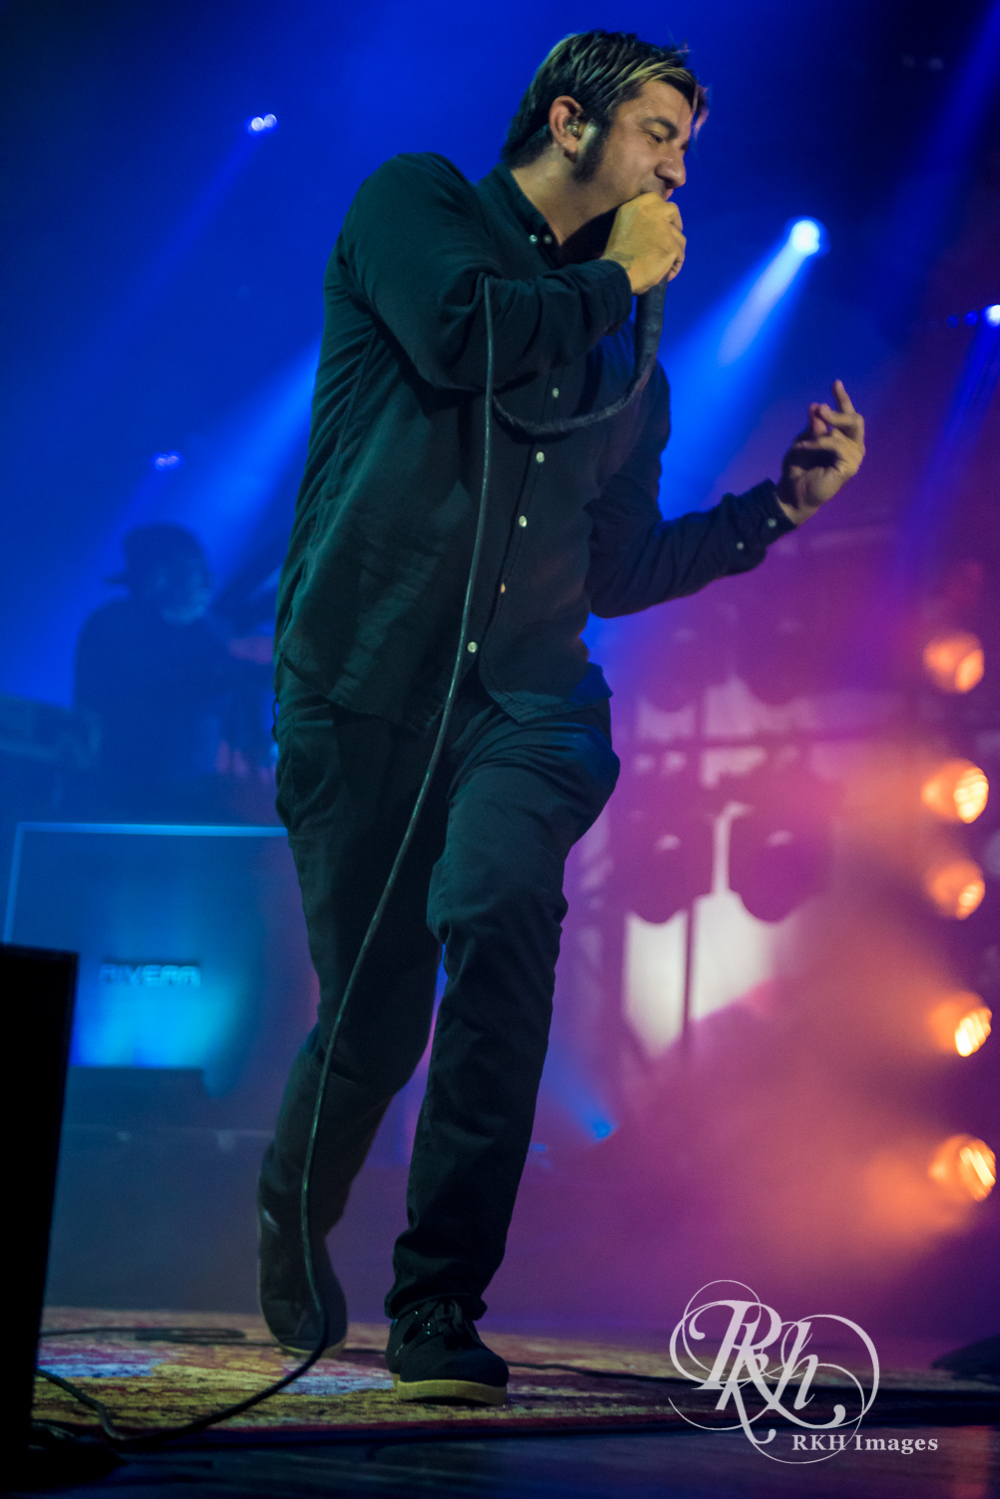 deftones rkh images (5 of 33).jpg